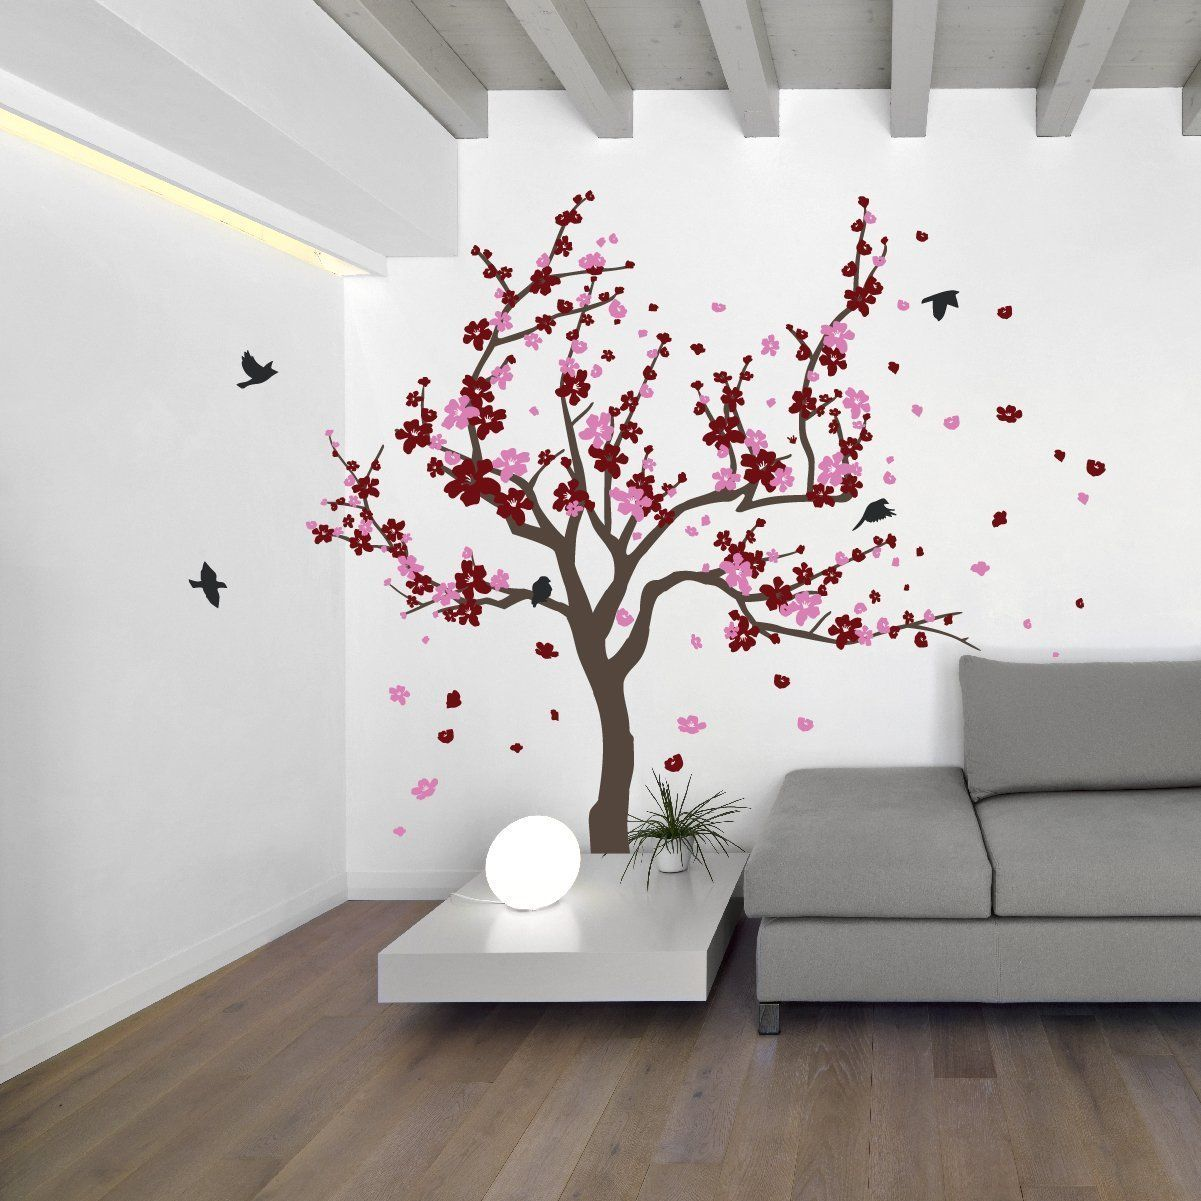 Cherryblossomtreewalldecalswithbutterflywallbychinstudio japanese cherry blossom tree and birds wall decal sticker for flower baby nursery room decor art amipublicfo Image collections